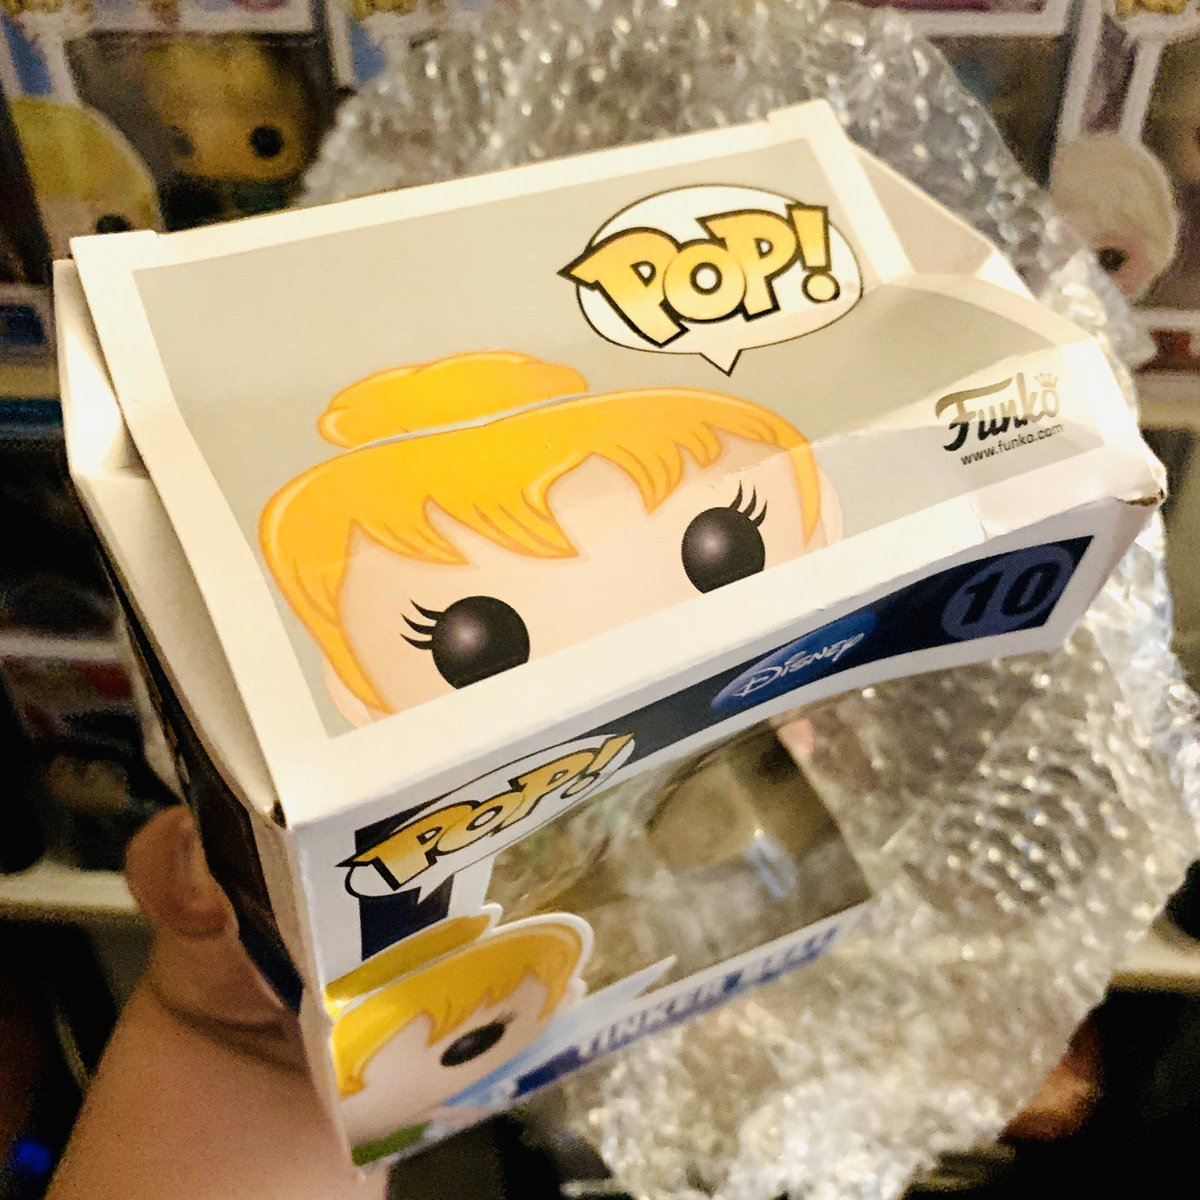 That's it. I'm going to have to stop buying #FunkoPOP from @Amazon if the boxes keep coming severely crushed like this. I even overpaid for this above market value. Anyone else keep experiencing this? #fail #funko #funkopops